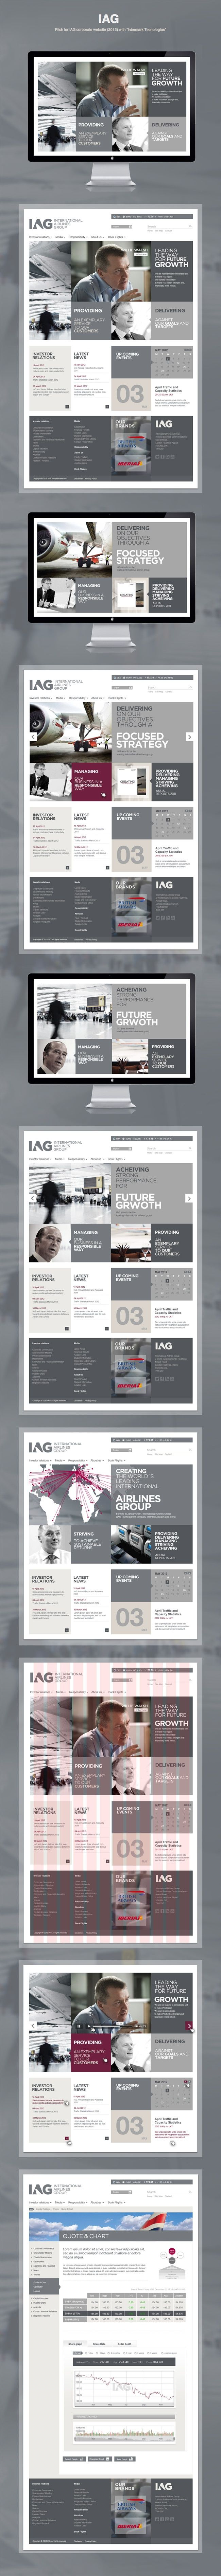 "IAG by Yan Duffield, via Behance *** ""Pitch for IAG corporate website (2012) with ""Intermark Tecnologias"""":"